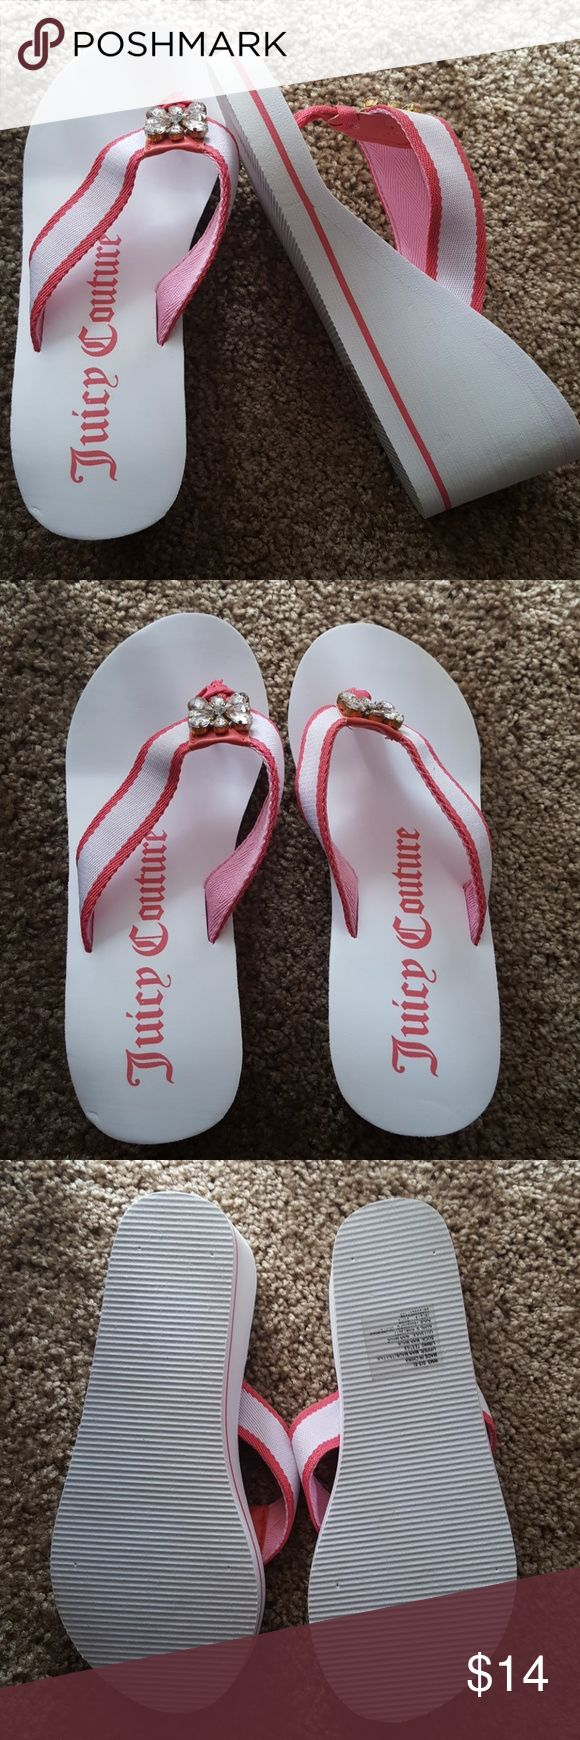 Juicy Couture pink white wedge flip flop sandals Good condition.  Aprox Wedge 3''. White and pink canvas straps. Rhinestone flower detail. Super comfy. Upper: mam made textile. Outsole: man-made Juicy Couture Shoes